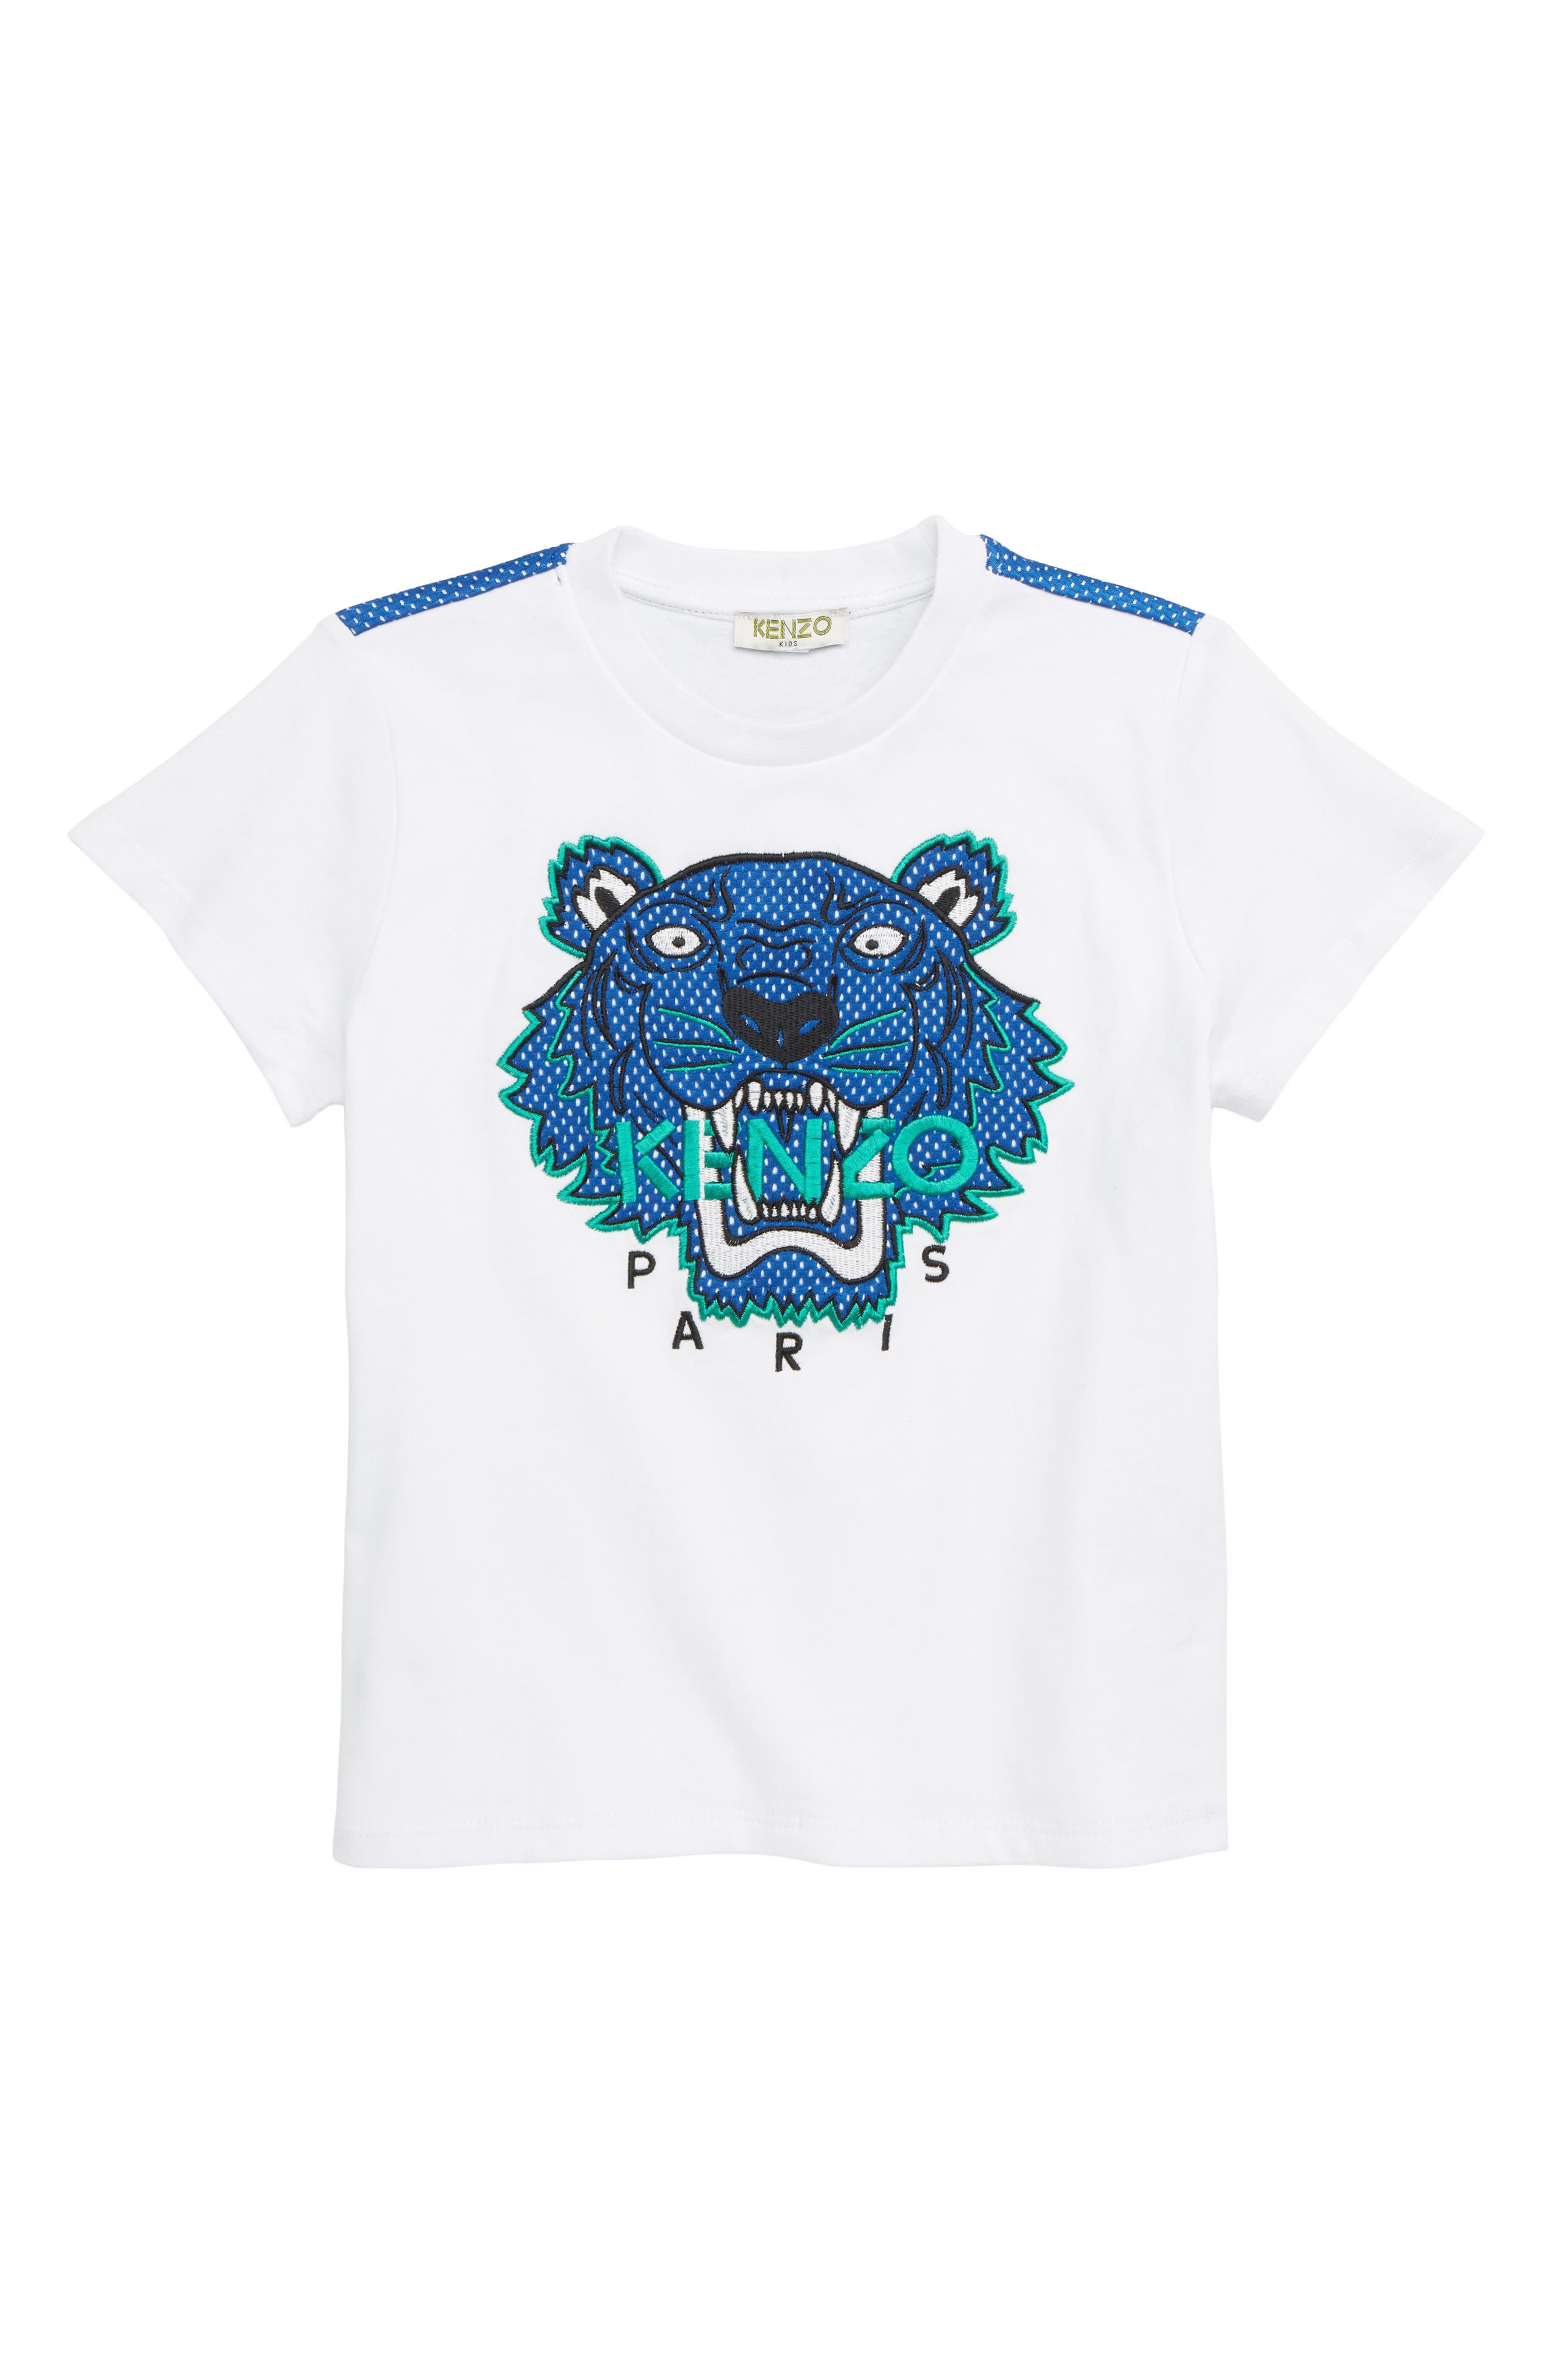 KENZO Embroidered Tiger T-Shirt, Main, color, WHITE